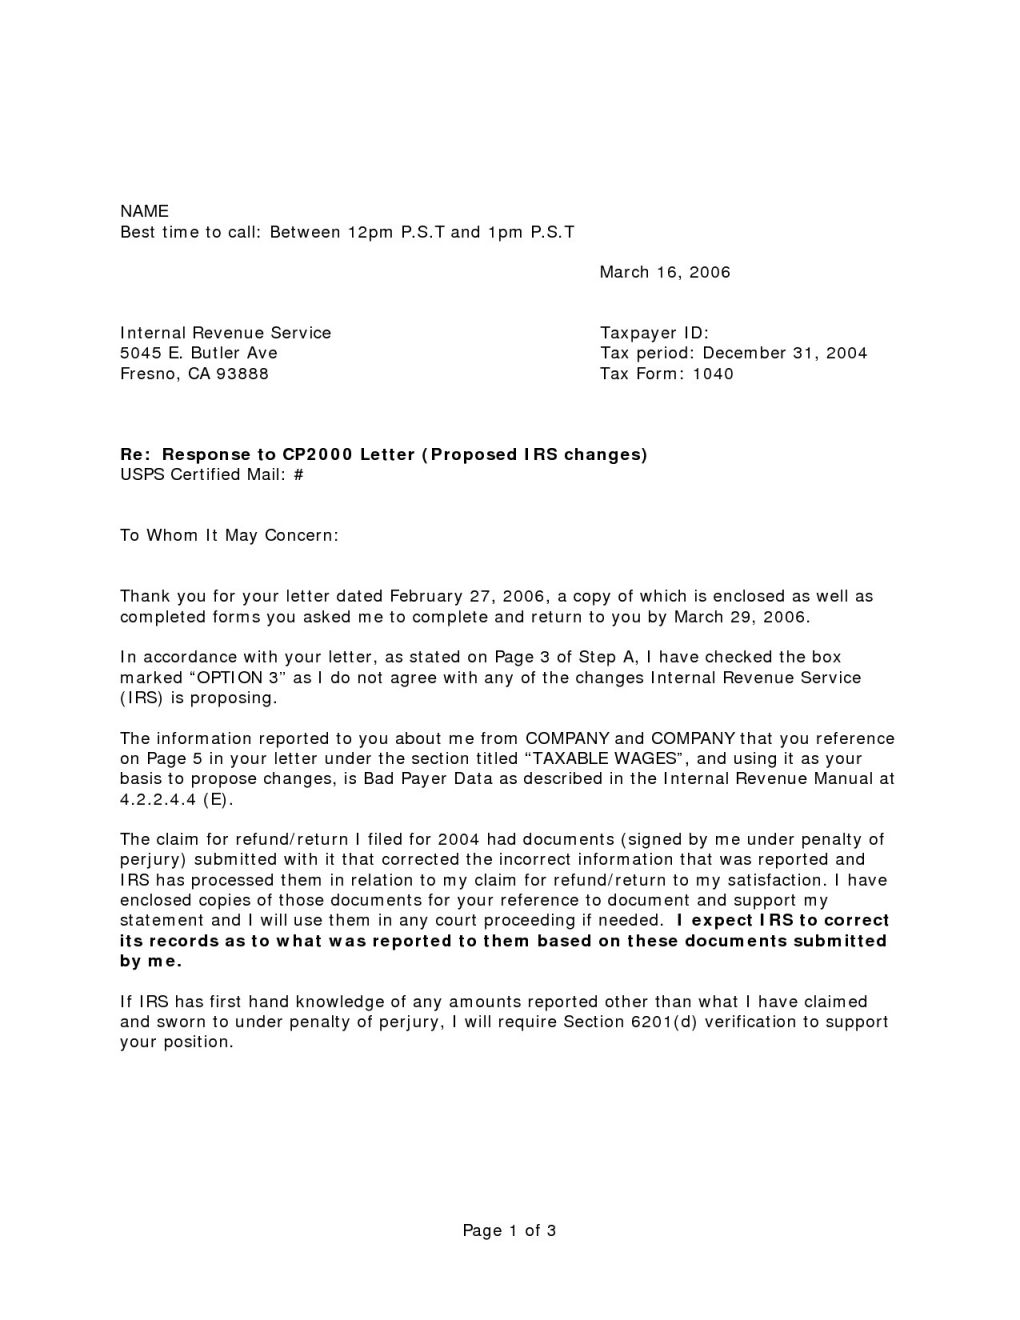 irs response letter template new sample response letter to irs notice fs34 documentaries for